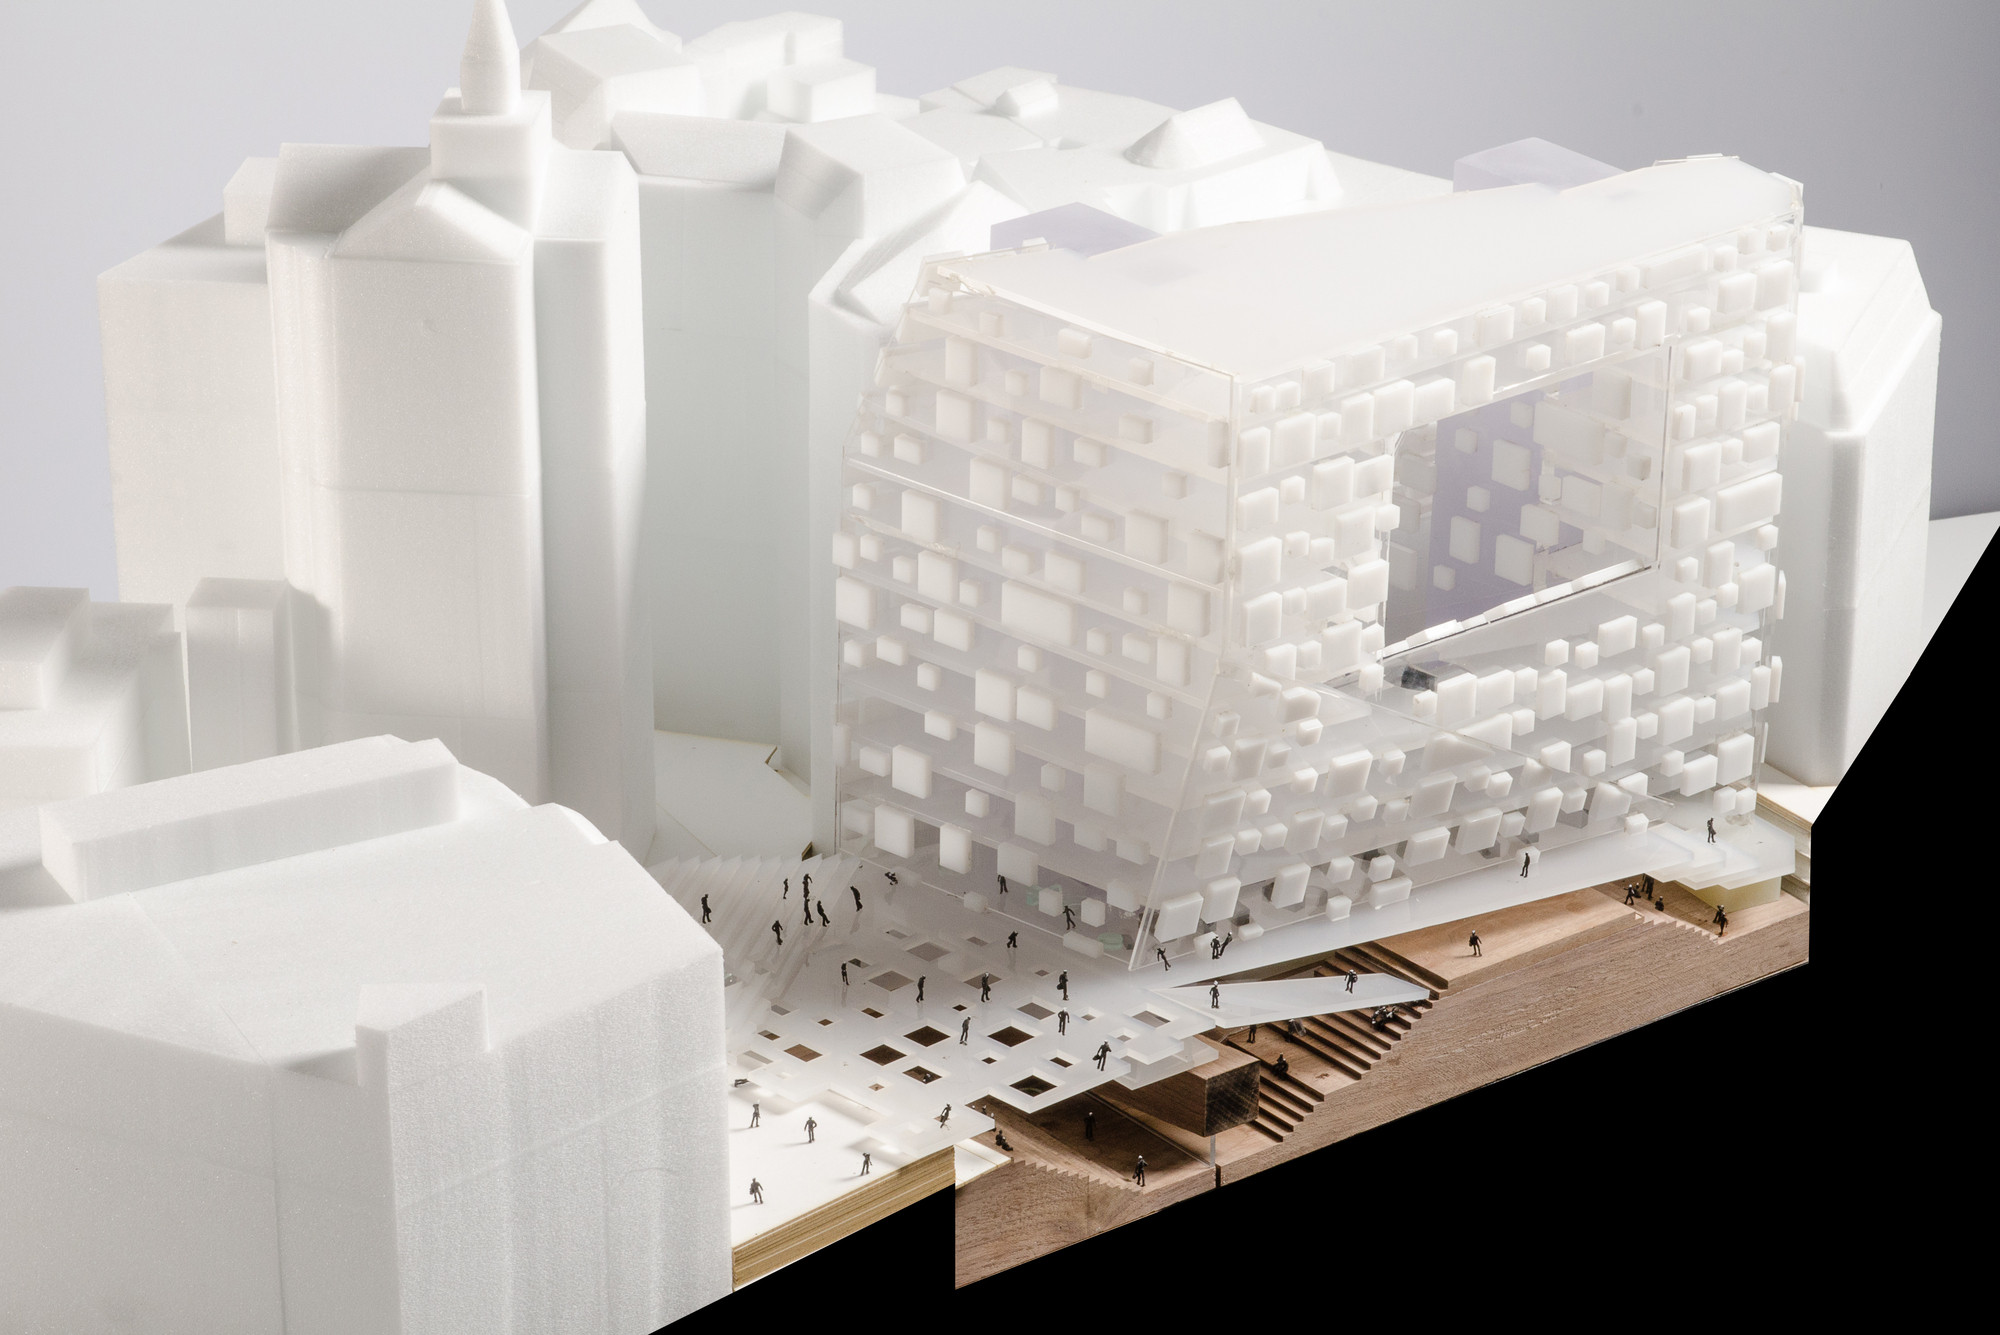 LSE Asks for 'Further Work' To Be Done on Shortlisted Designs, Team B. Image Courtesy of LSE / RIBA